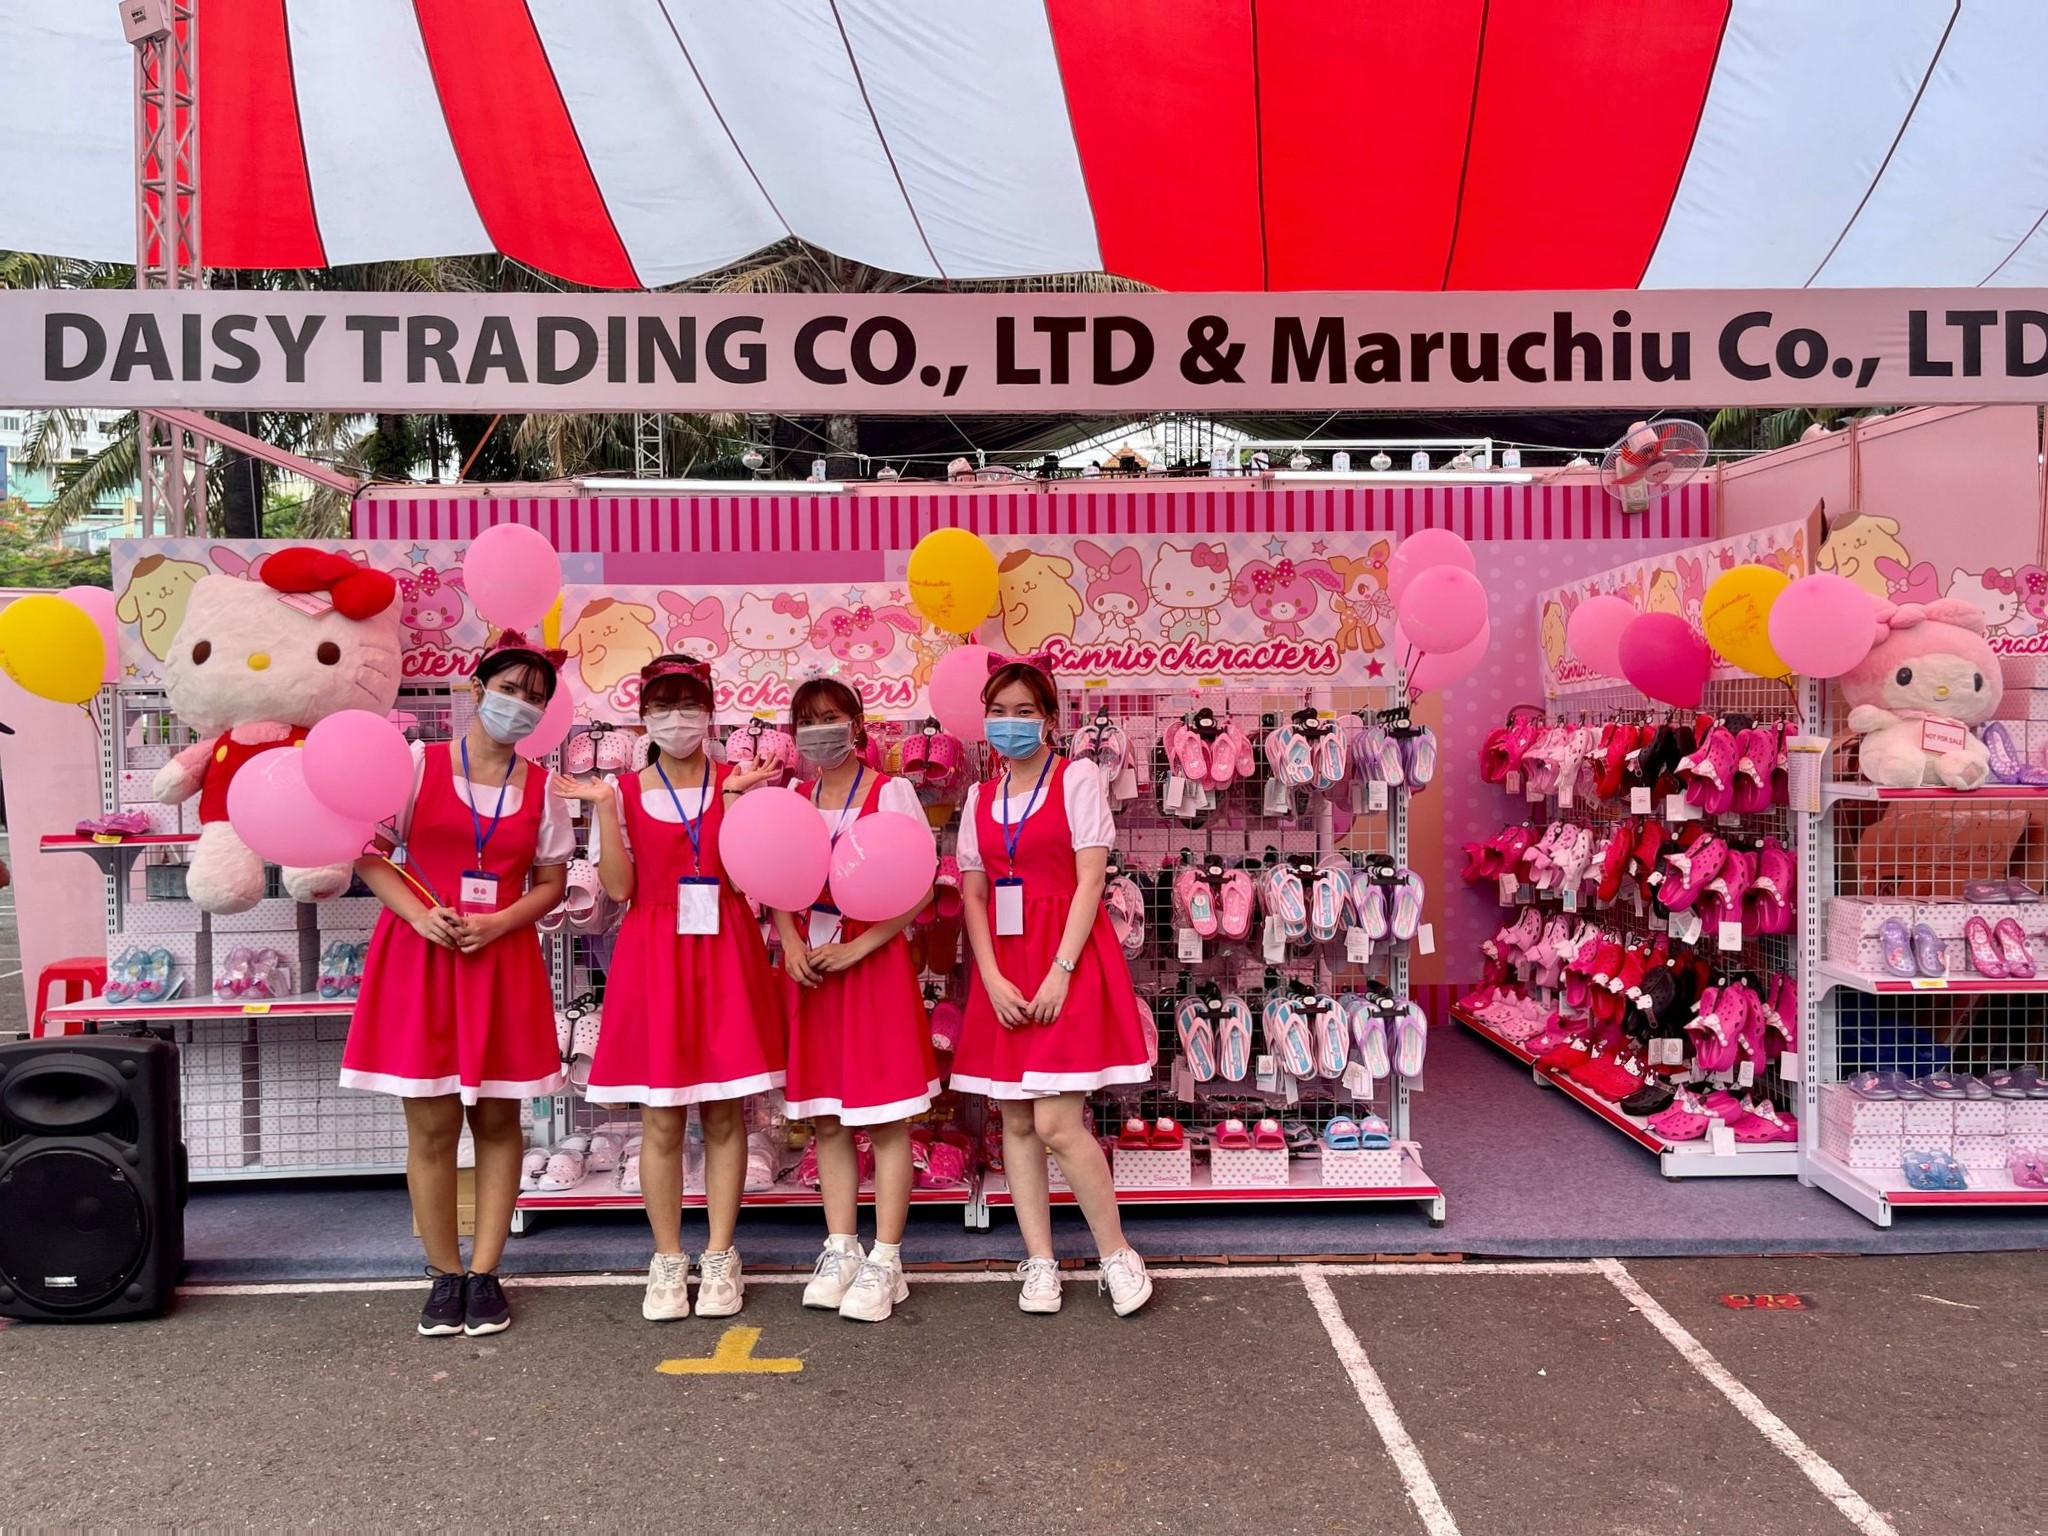 Staff pose for a photo at a booth selling Hello Kitty products at the Japan Vietnam Festival in Ho Chi Minh City on April 17, 2021. Photo: Dong Nguyen / Tuoi Tre News